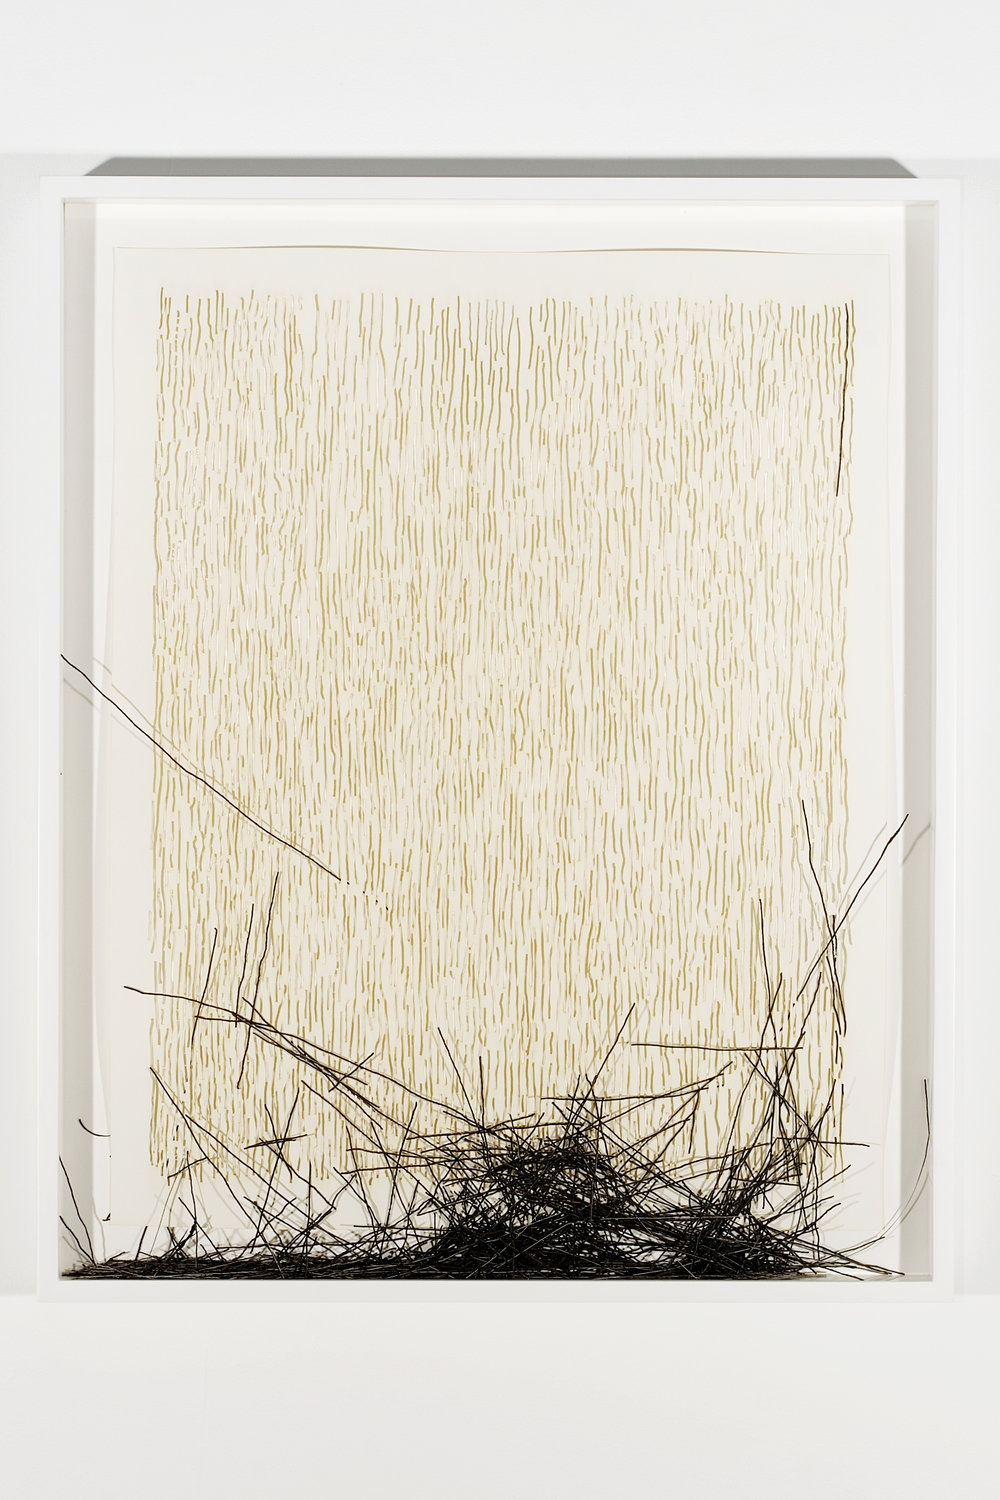 """Collapsed Drawing: """"Vertical Lines, Not Straight, Not Touching"""" (Sol Lewitt), 2007 laser-cut paper and laser-cut archival digital print mounted on museum board 80 x 65,4 cm - 31 1/2 x 25 3/4 inches (framed)"""